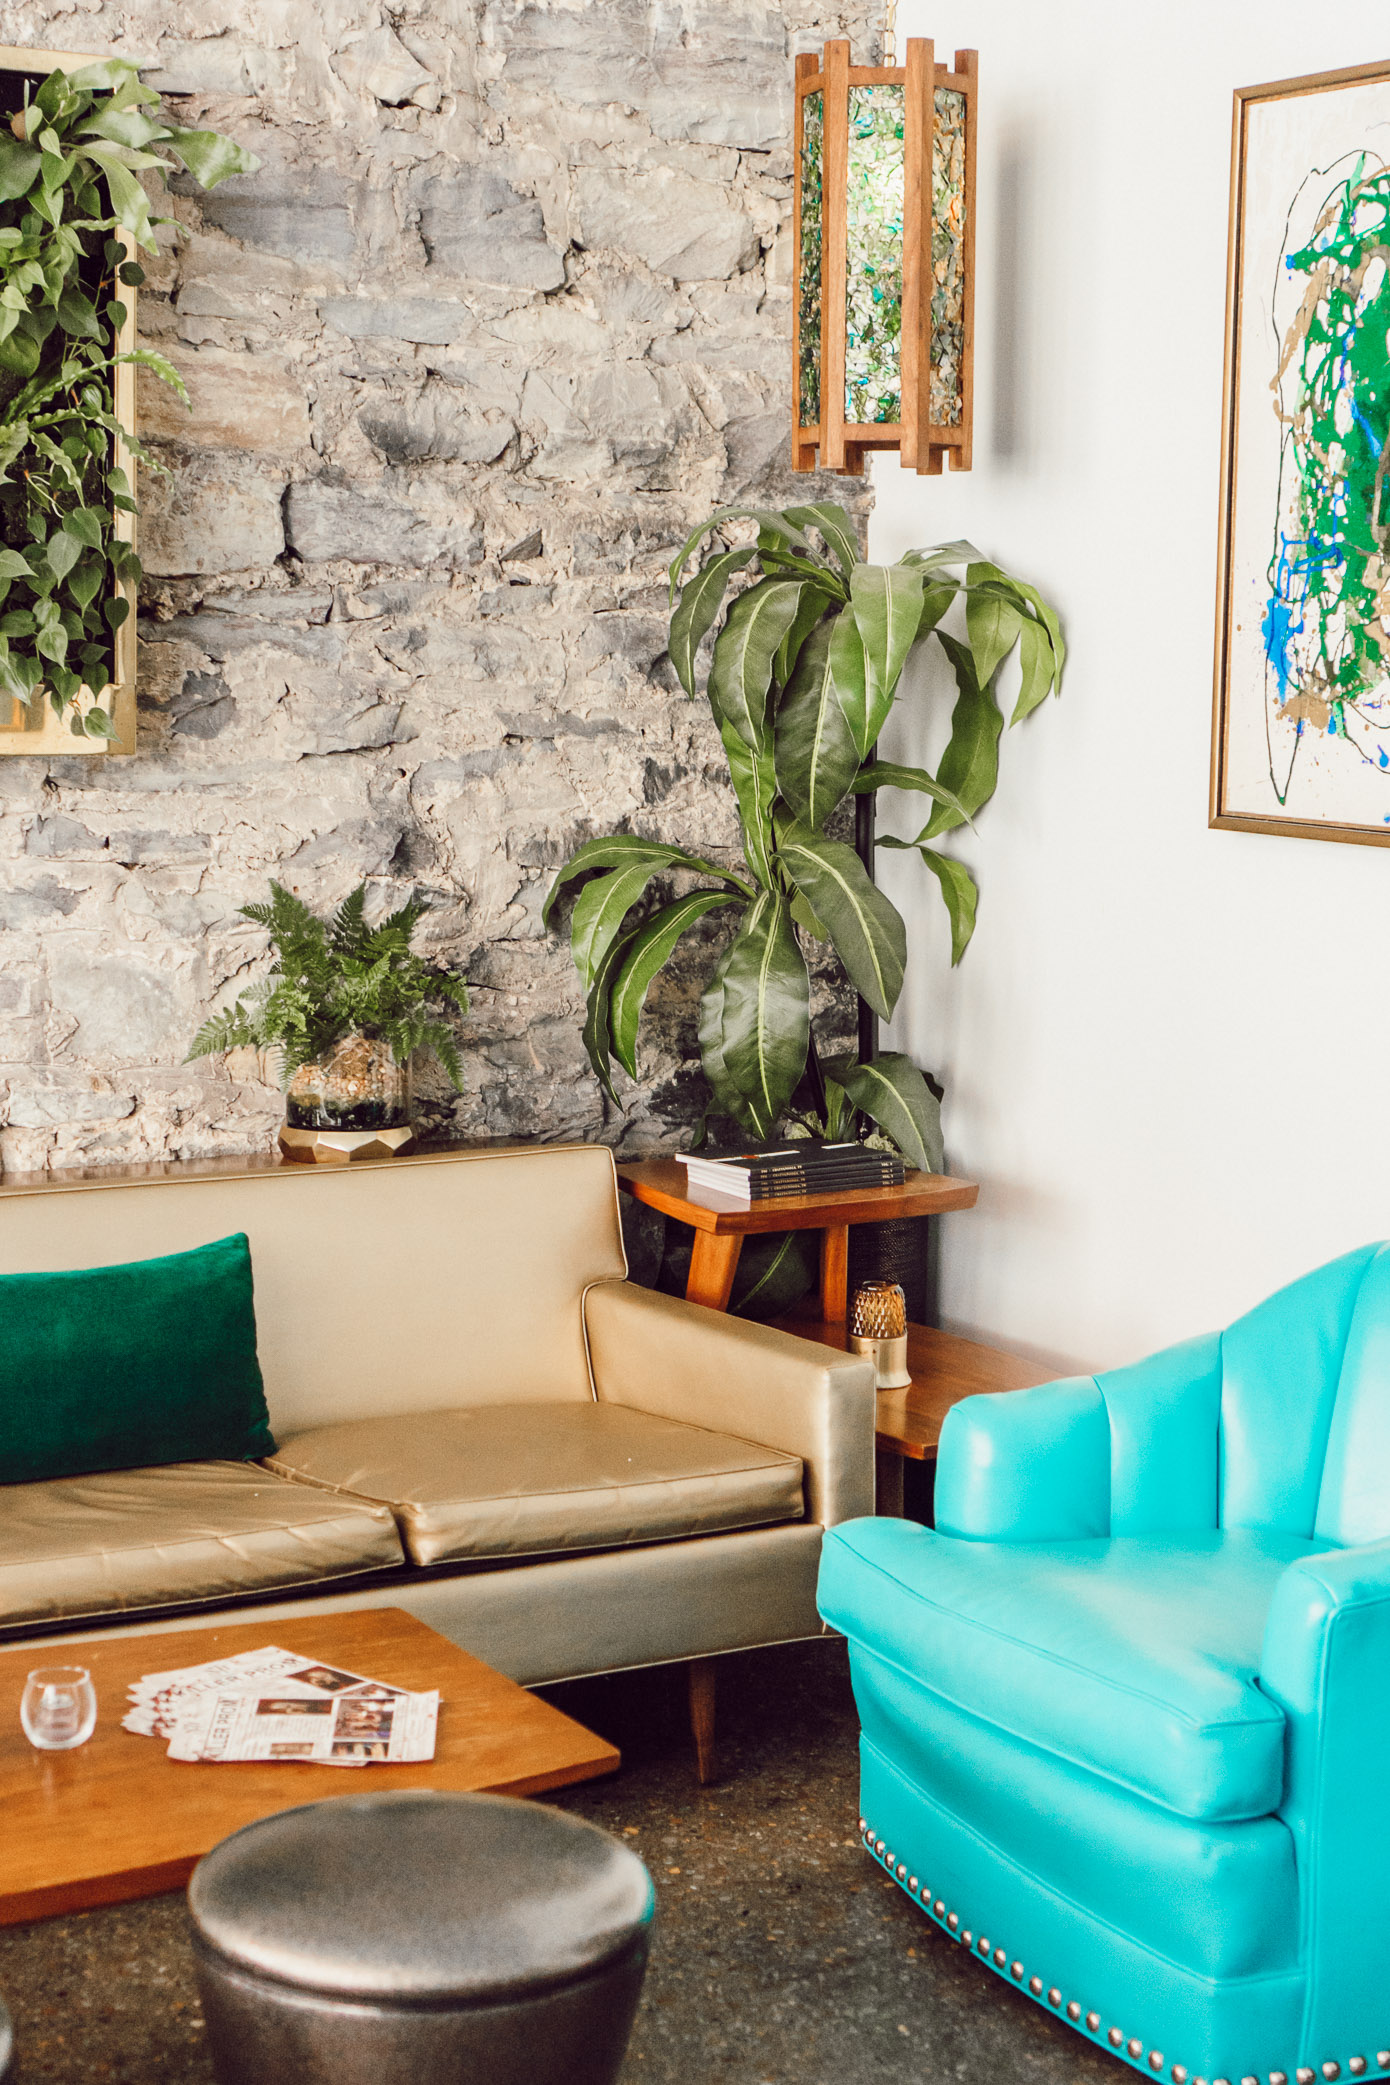 The Dwell Hotel, Boutique Hotels in Chattanooga Tennessee | Chattanooga Travel Guide Featured on Louella Reese Life & Style Blog